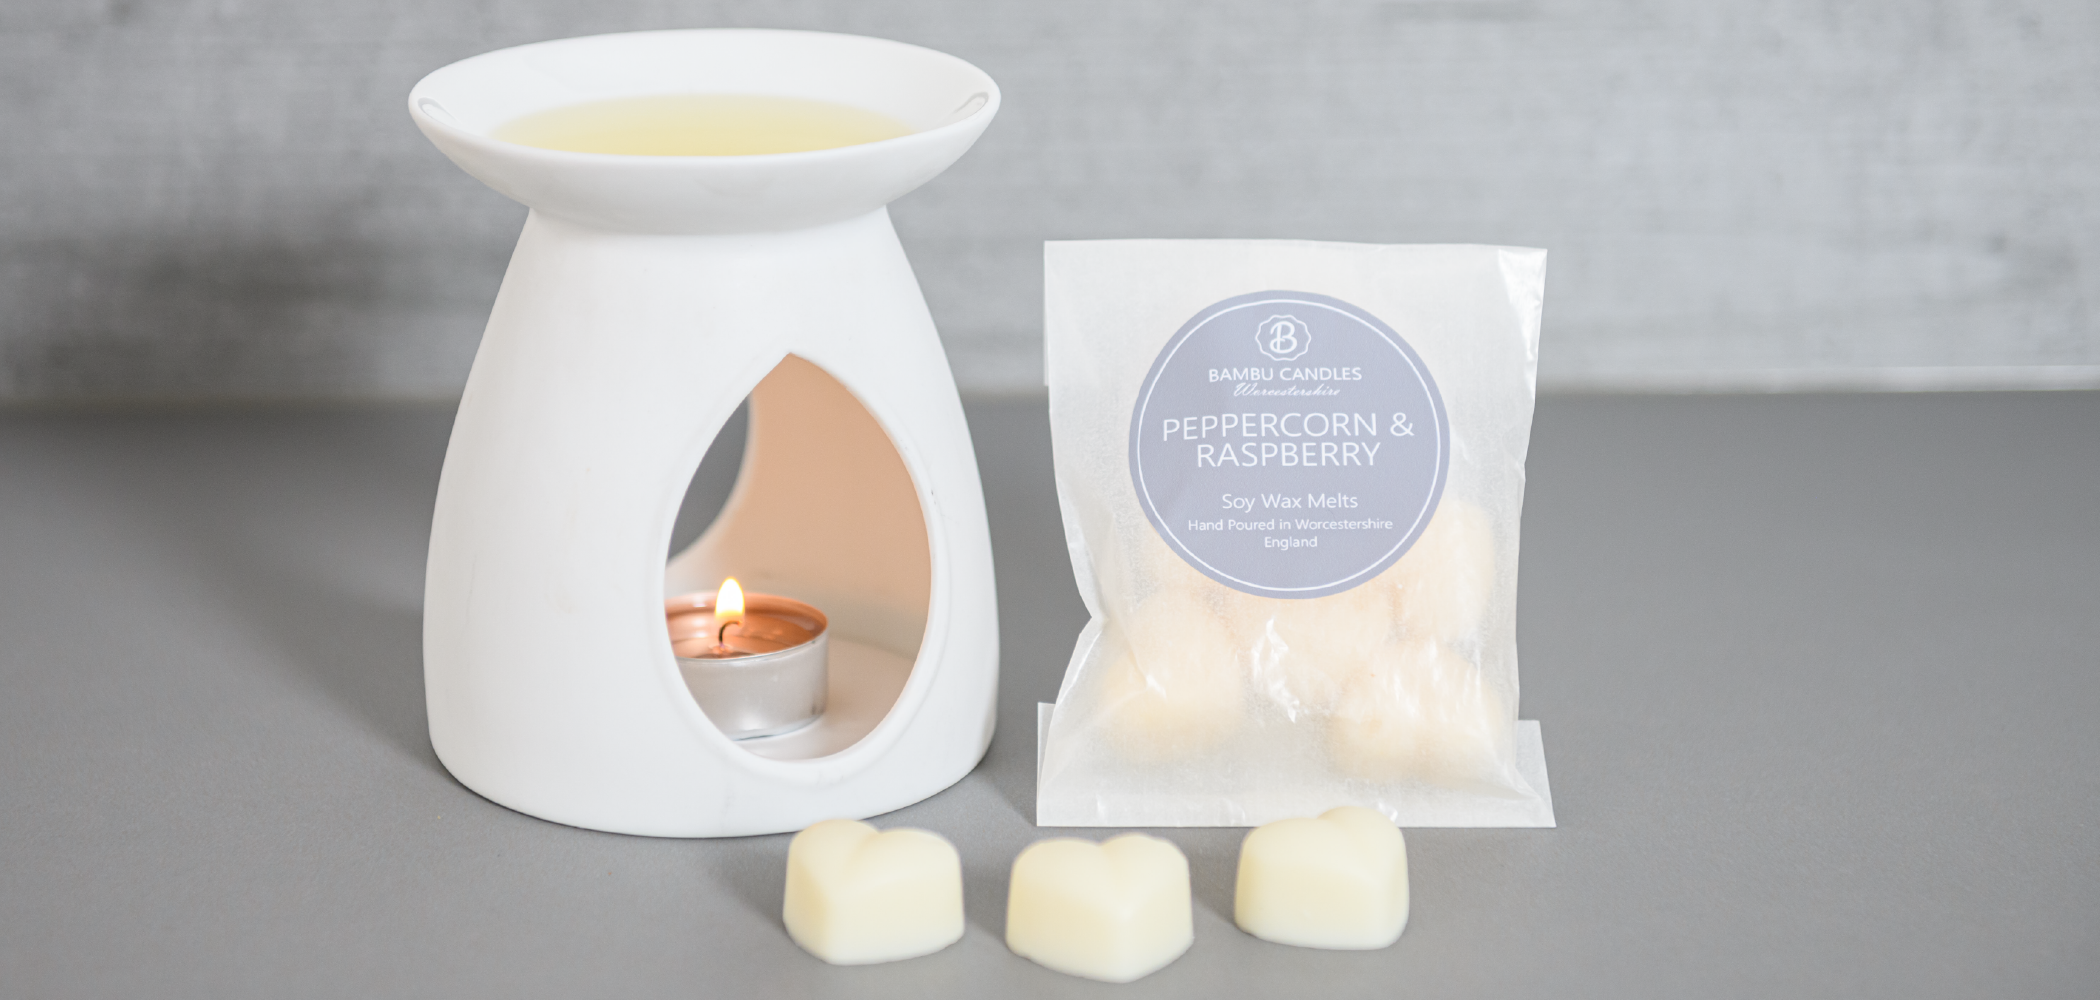 Page image for Wax Melts page.